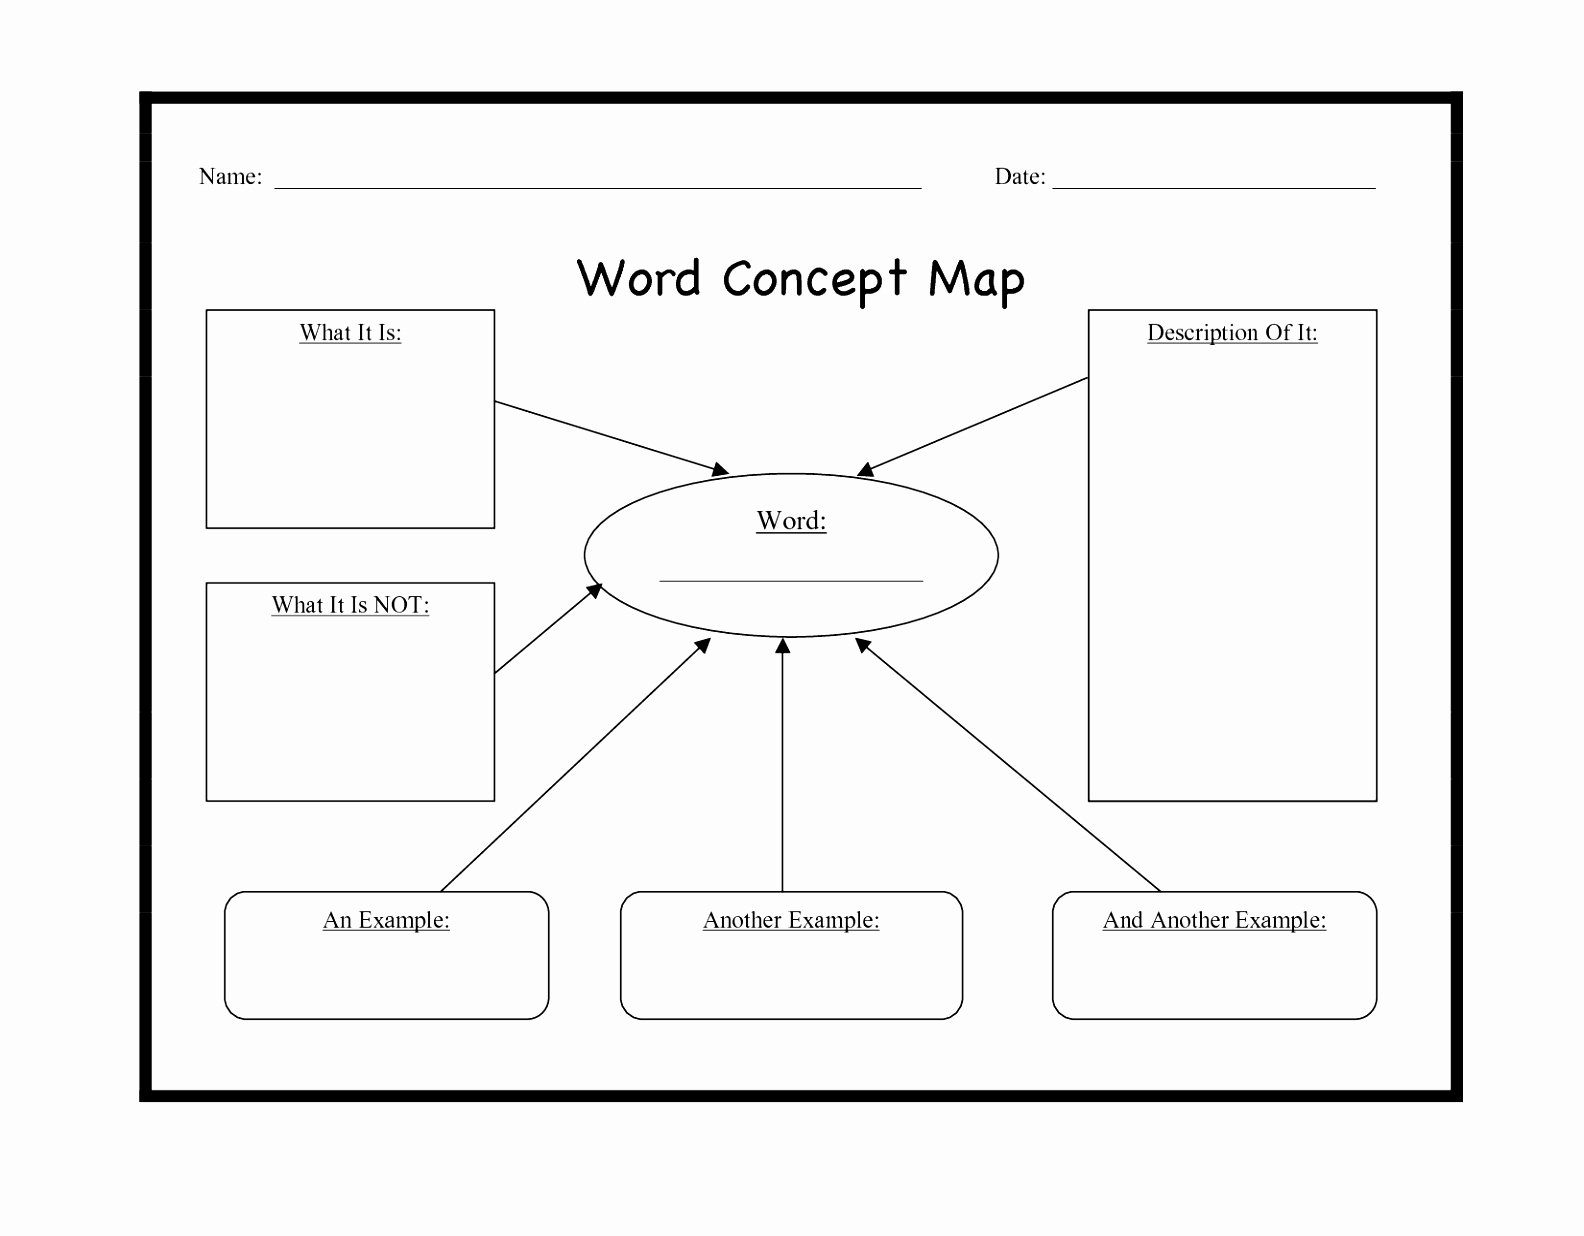 Blank Concept Map Template Elegant 9 Free Mind Map Template Word Ayiti